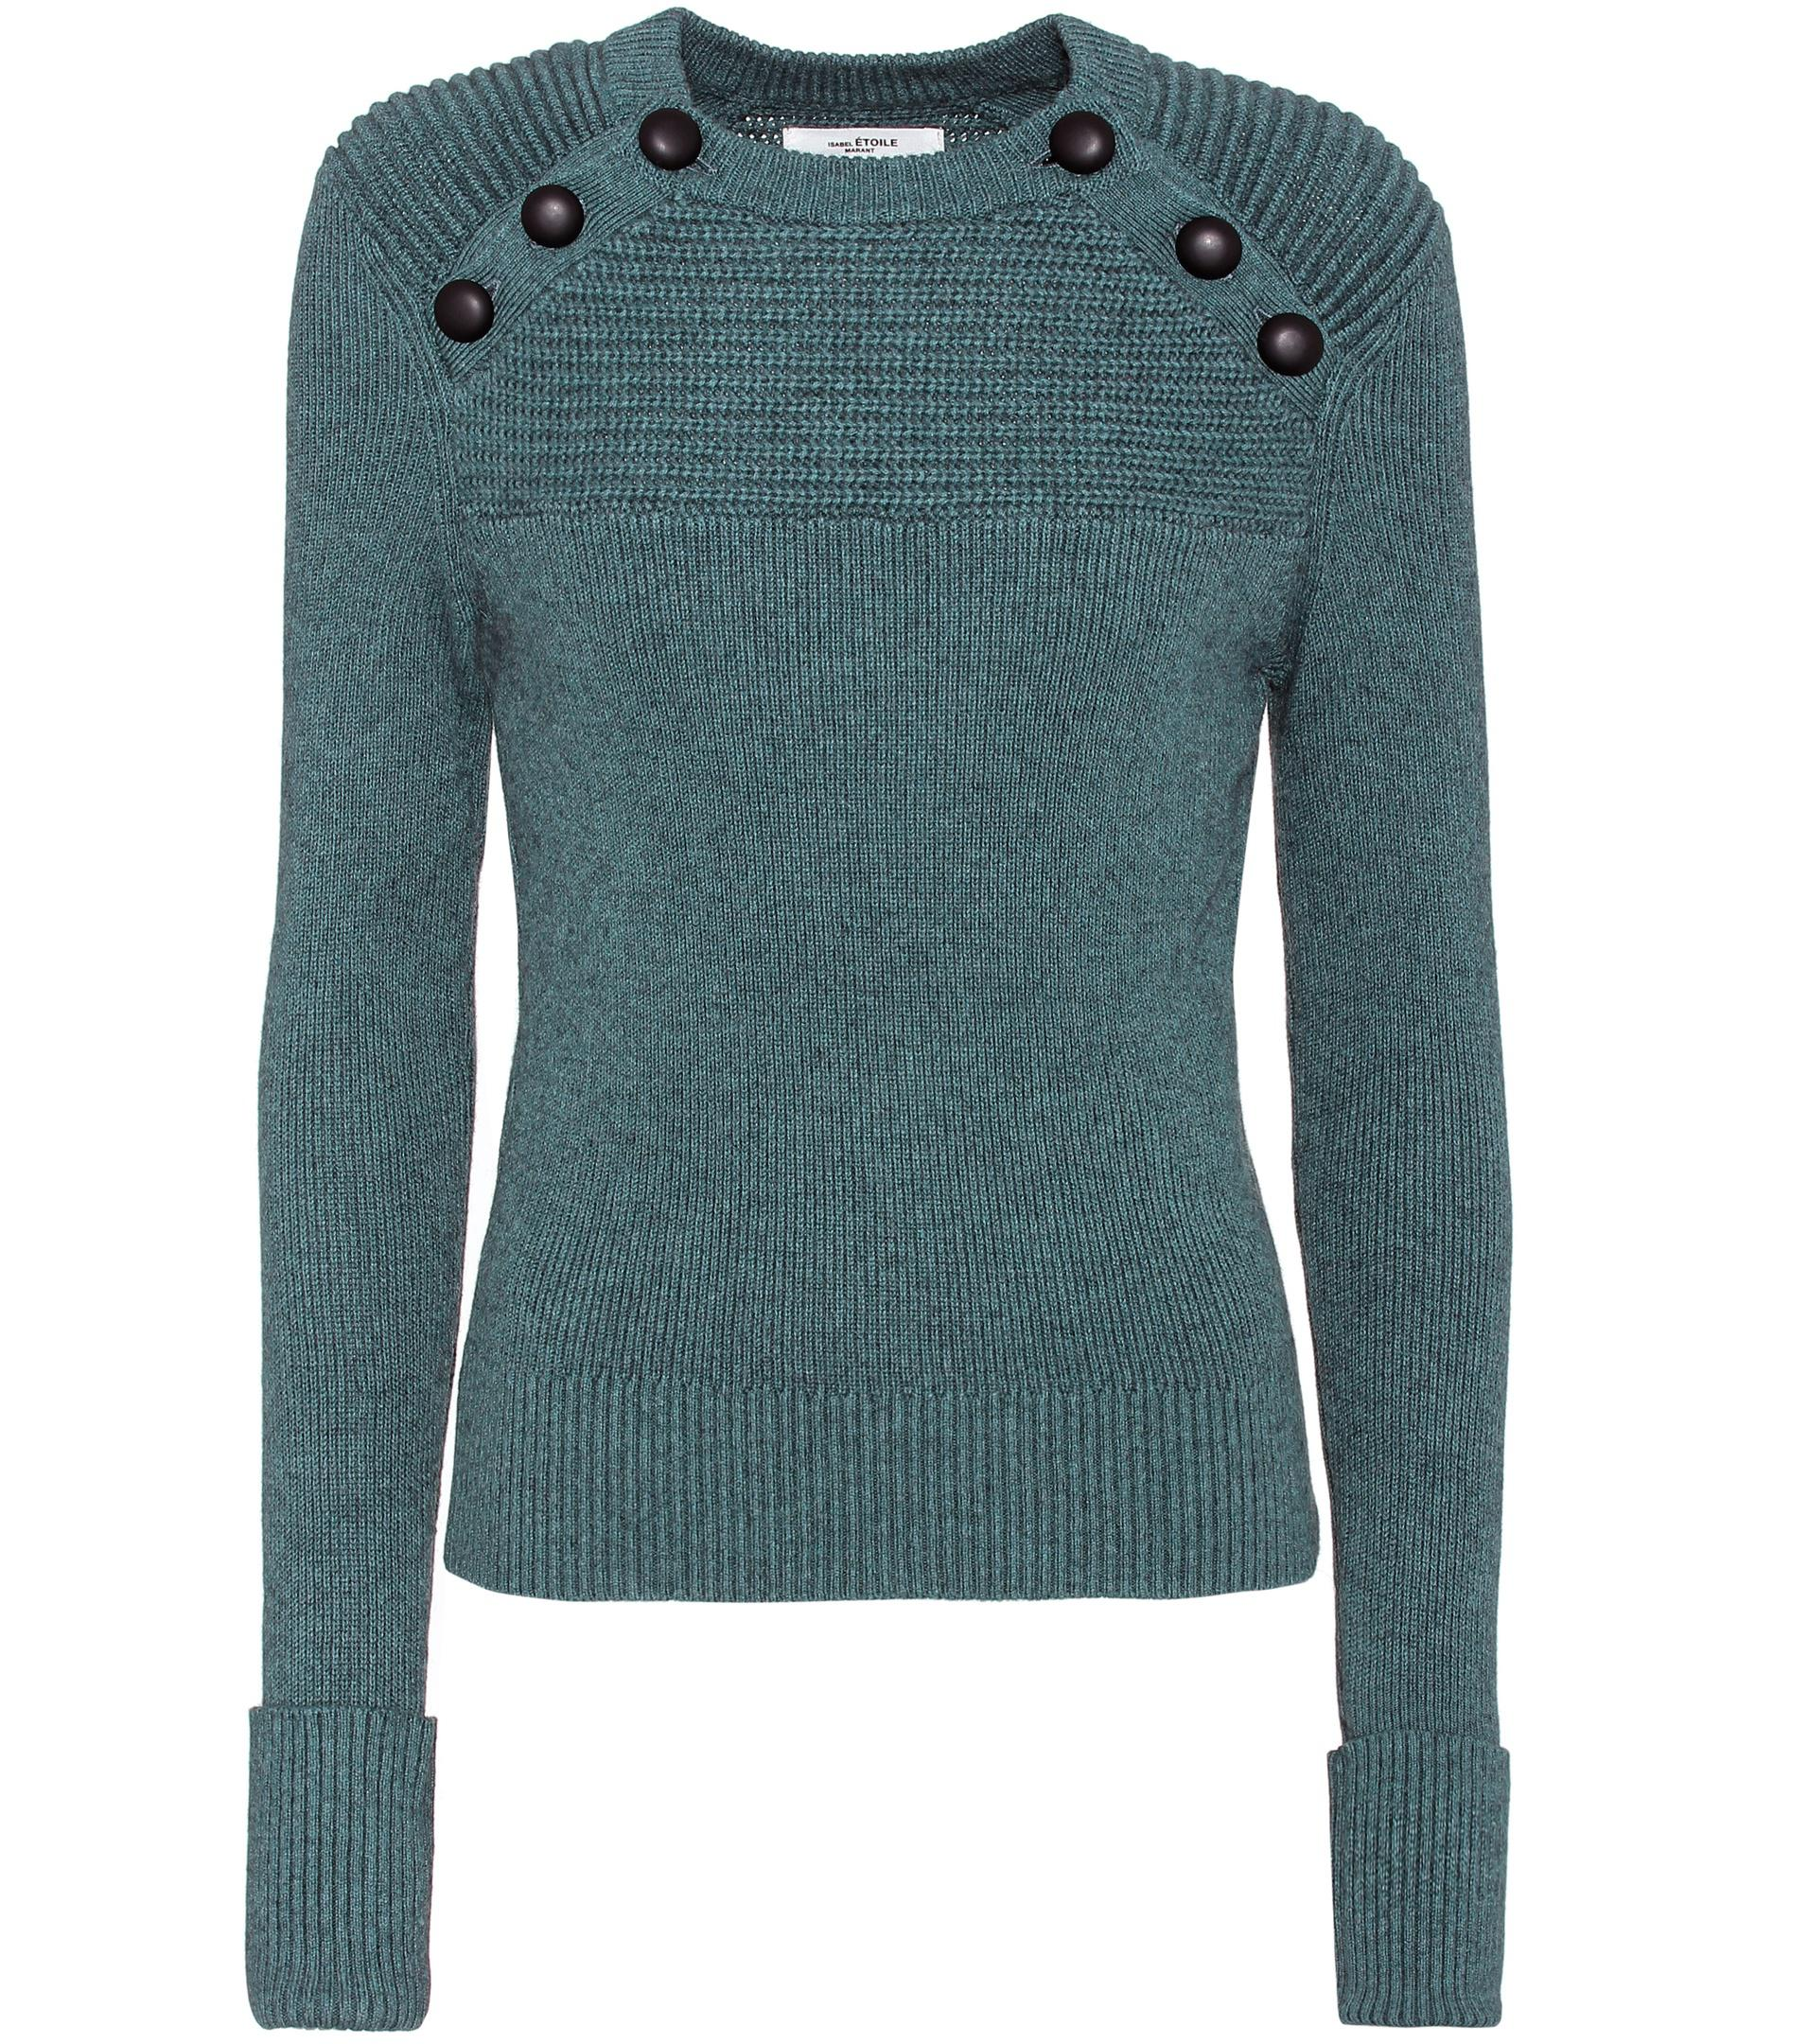 Étoile isabel marant Koyle Cotton And Wool Sweater in Blue | Lyst